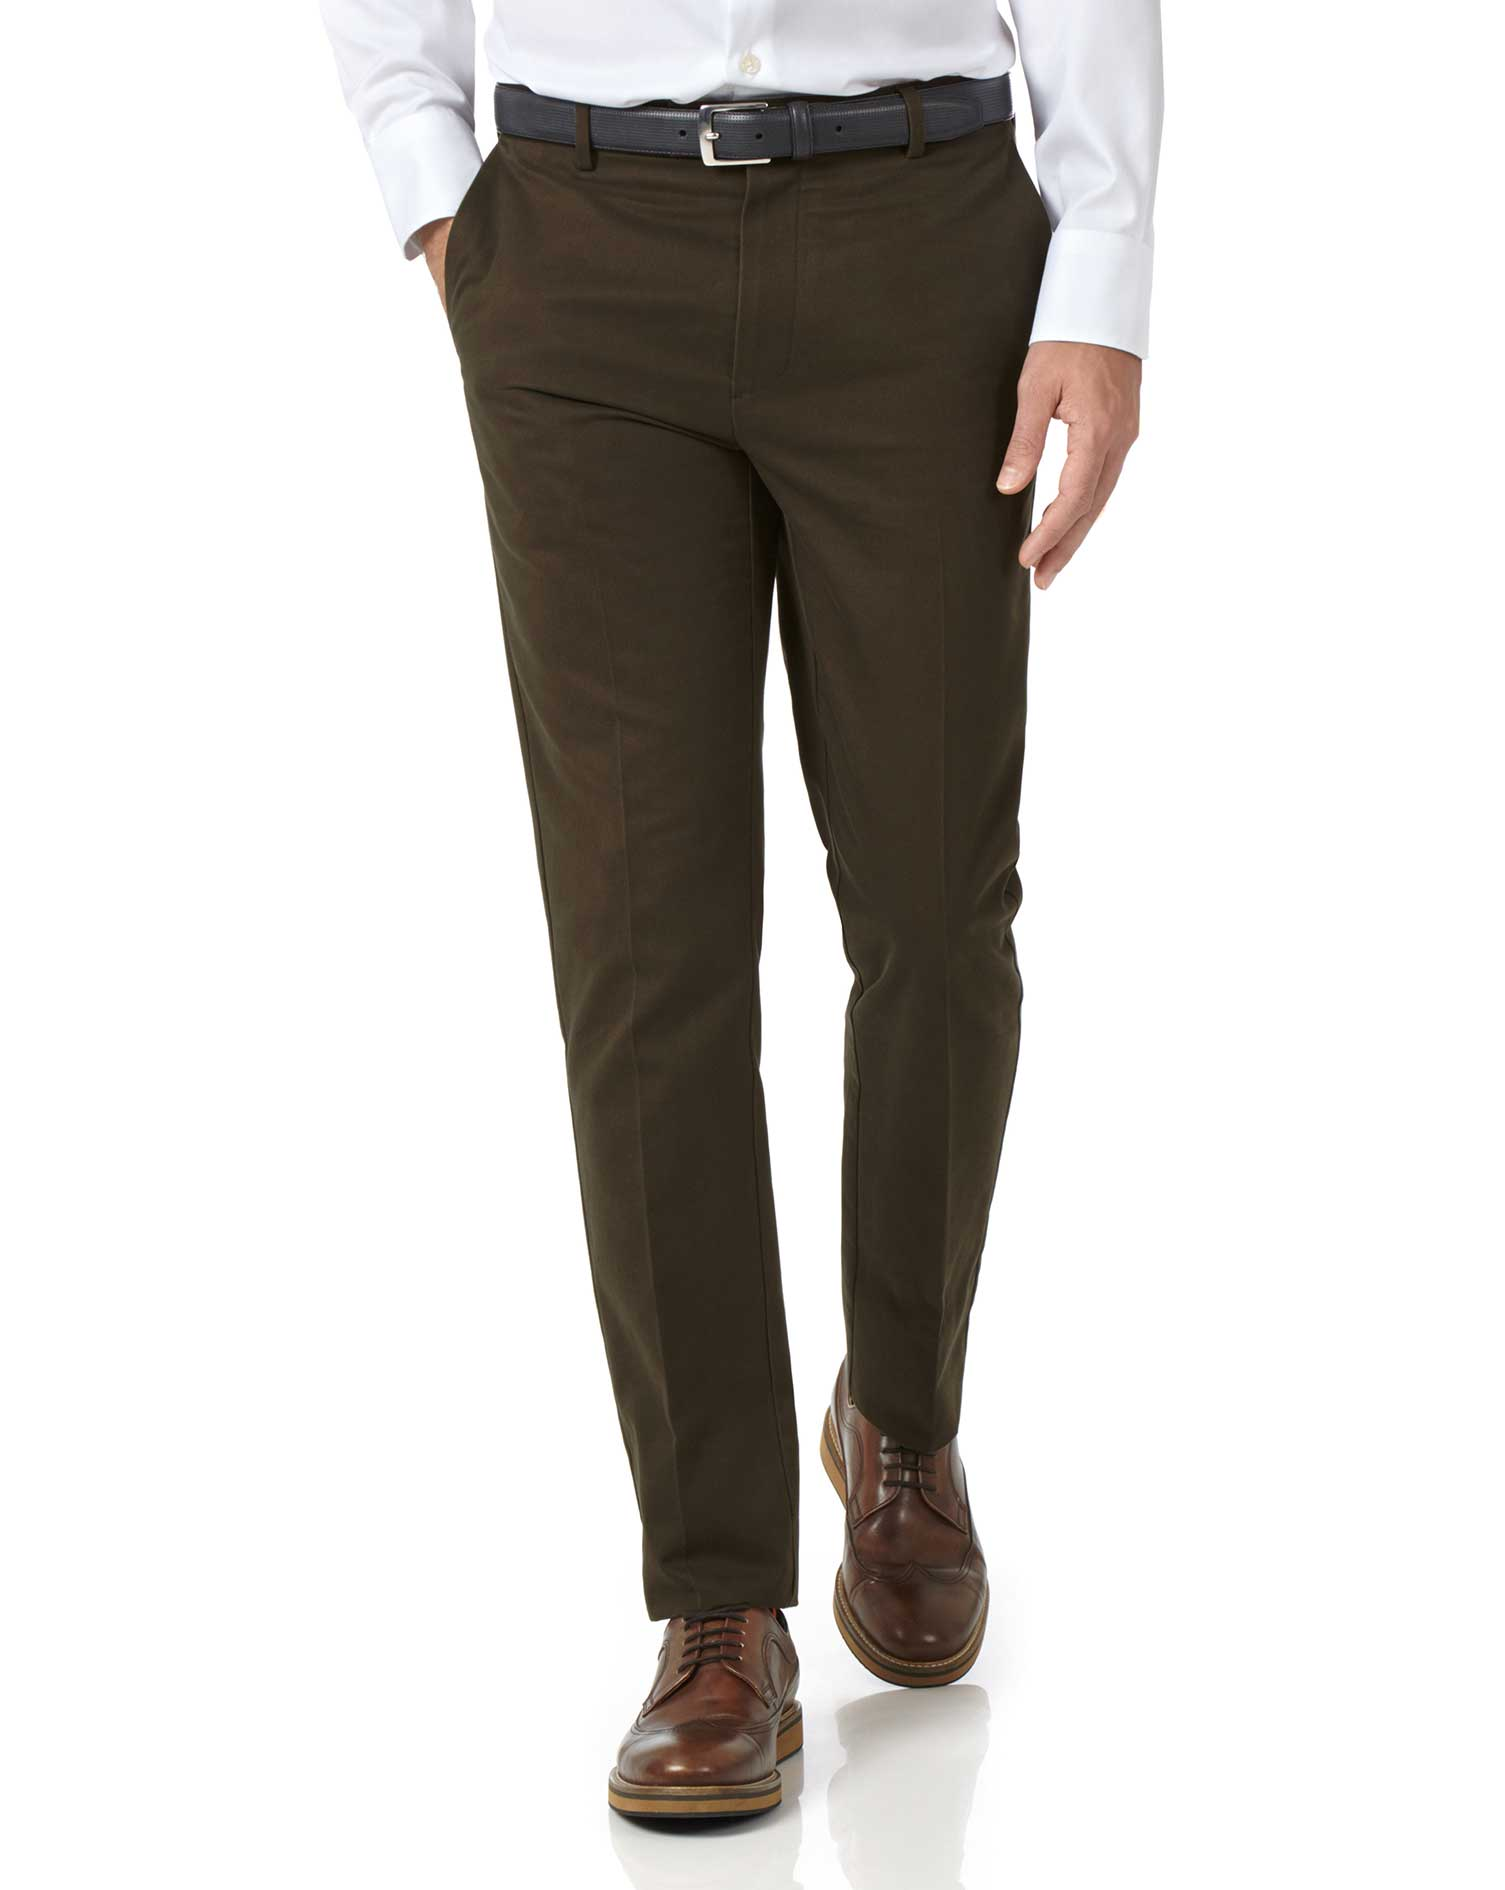 Brown Extra Slim Fit Flat Front Non-Iron Cotton Chino Trousers Size W32 L29 by Charles Tyrwhitt